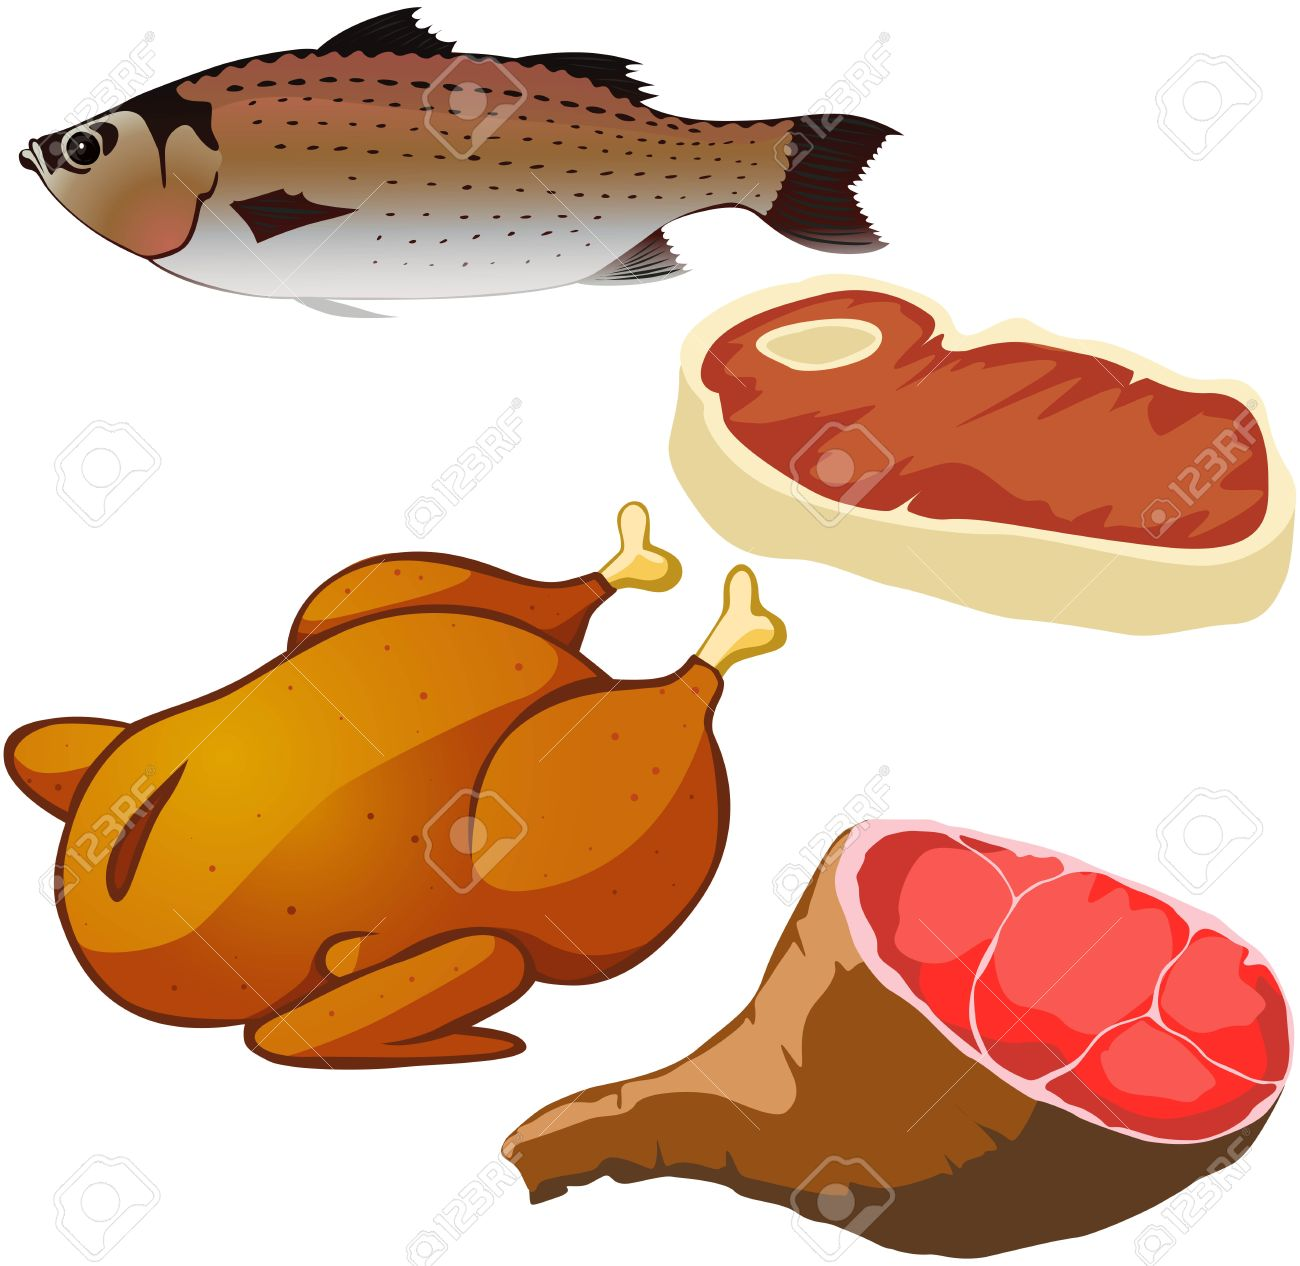 Chicken fish. Meat clipart station